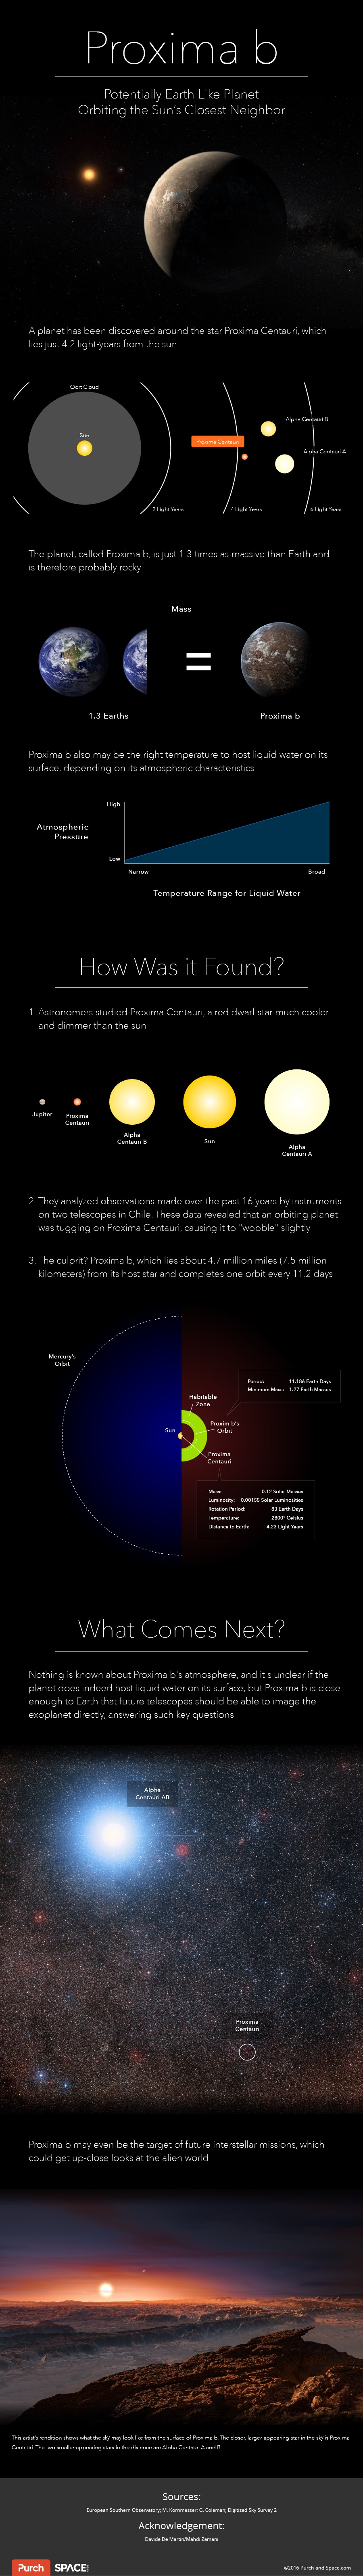 Meet Proxima b: The Closest Exoplanet We Know Explained (Infographic)